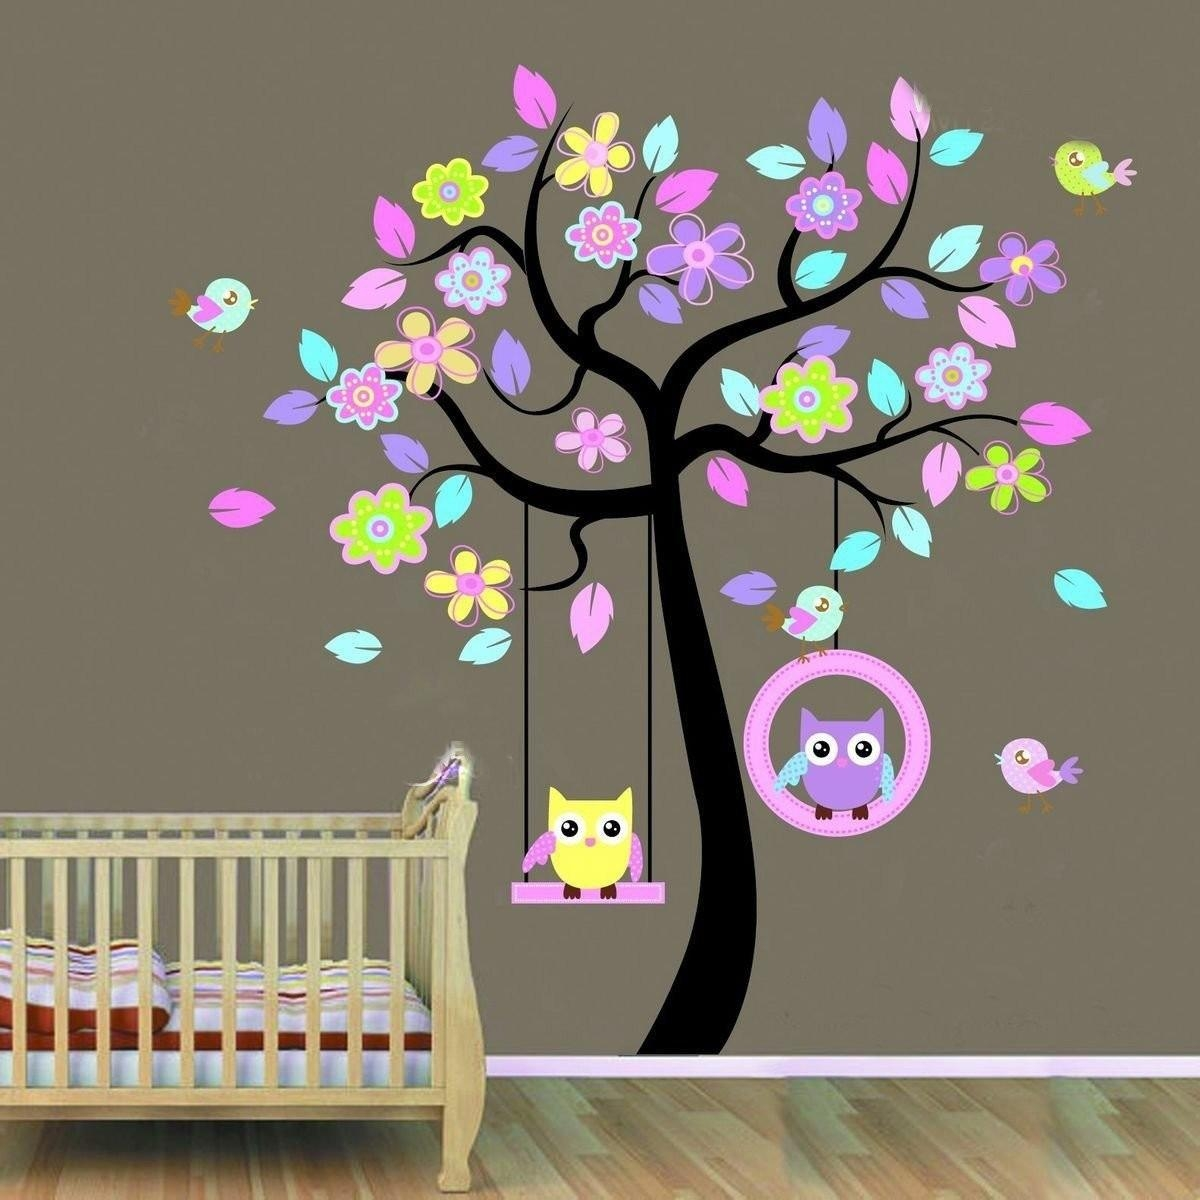 Huge Removable Swing Owl & Birds Colorful Scroll Tree Wall Art Pertaining To Owl Wall Art Stickers (View 10 of 20)